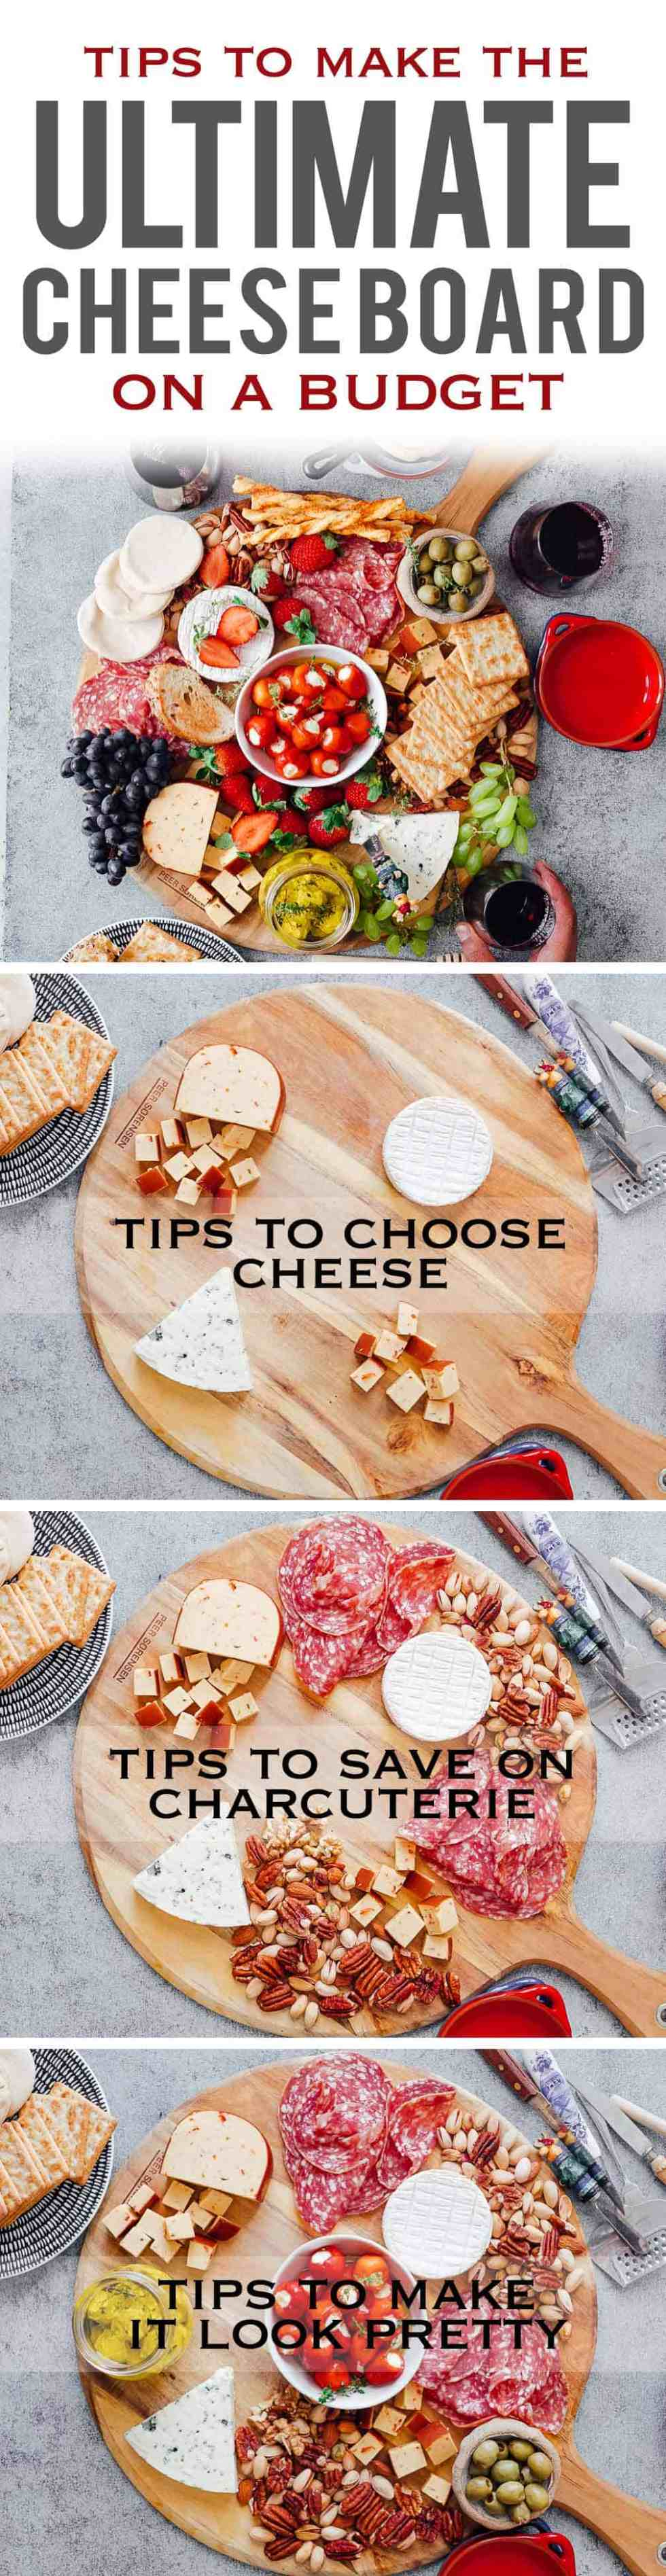 Learn how to make the Ultimate Wine and Cheese Board on a budget with simple tips and tricks. You'll be a DIY cheeseboard ninja by the end of this detailed post. This easy cheese platter is perfect for Christmas holidays, as a party appetizer for a crowd or for a romantic dinner date. Also detailed instructions for wine and cheese pairing